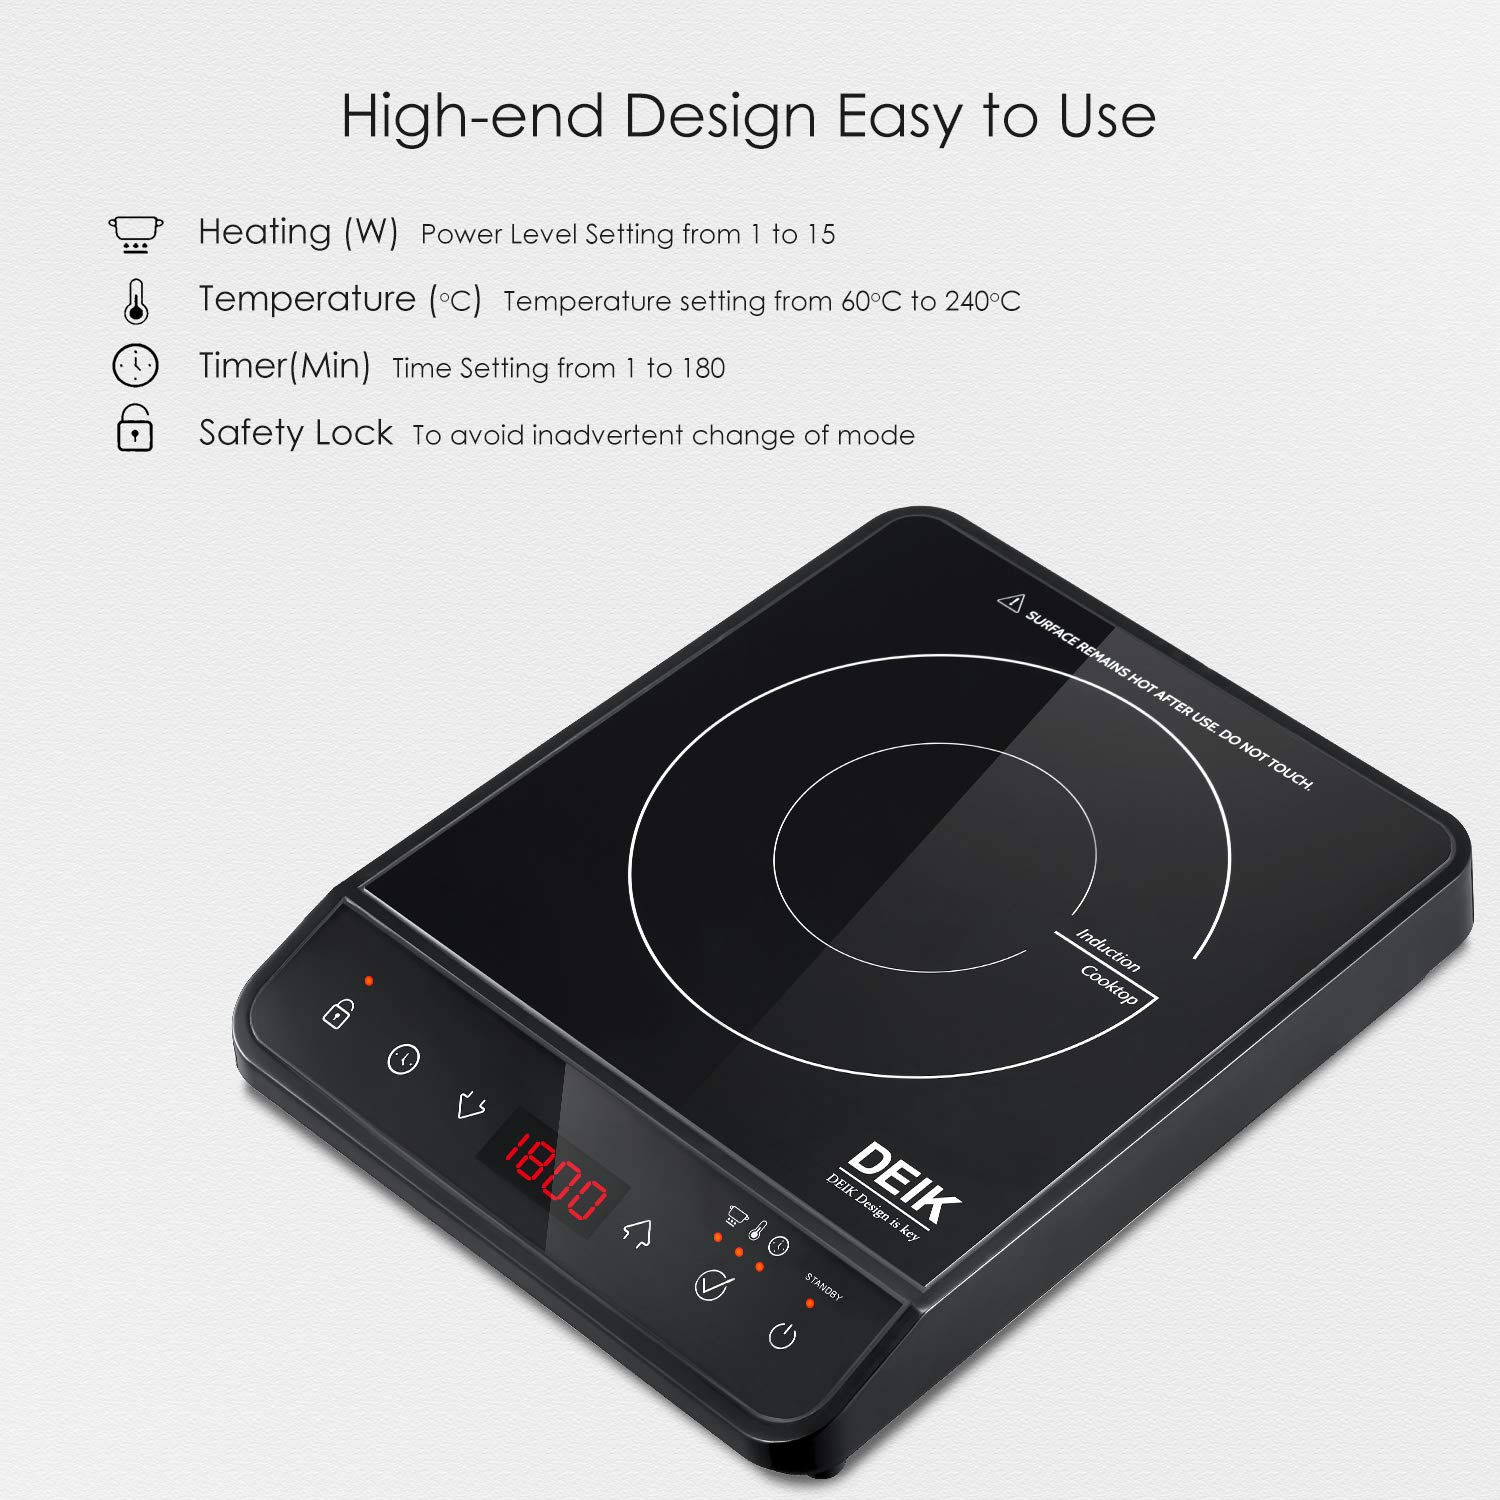 Induction Cooktop, Deik Induction Burner 1800W Sensor Touch with Child Safety Lock, Portable Induction Cooktop with Timer and 10 Temperature Settings, Suitable for Home Kitchen, RV, Boats, Garden by Deik (Image #4)